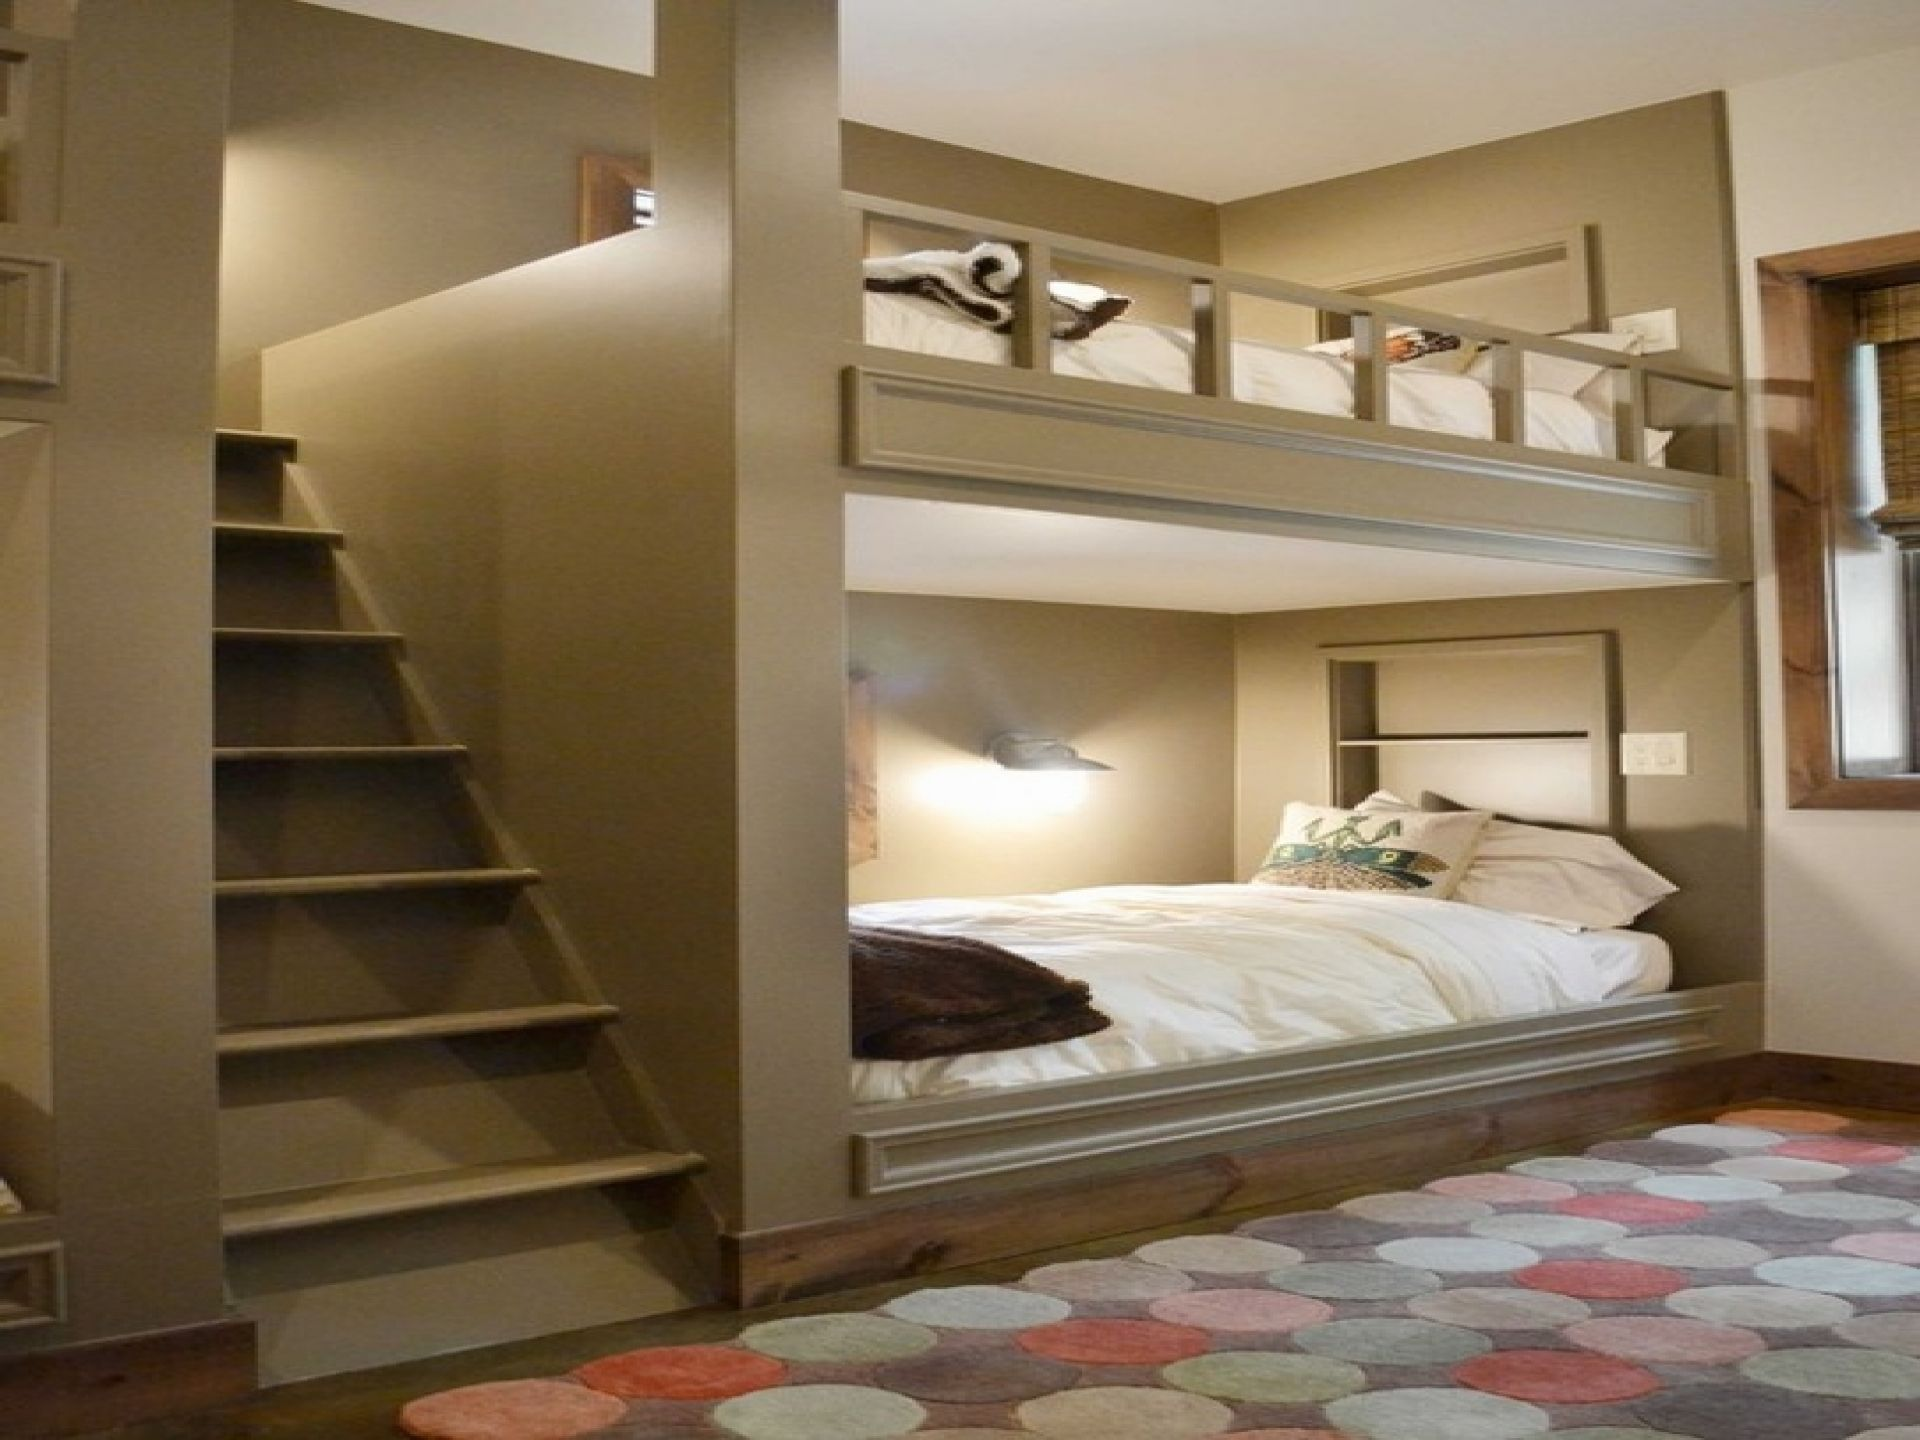 Bunk Bed Bedroom Ideas Awesome Modern Adult Bedroom Decorating Ideas Feature